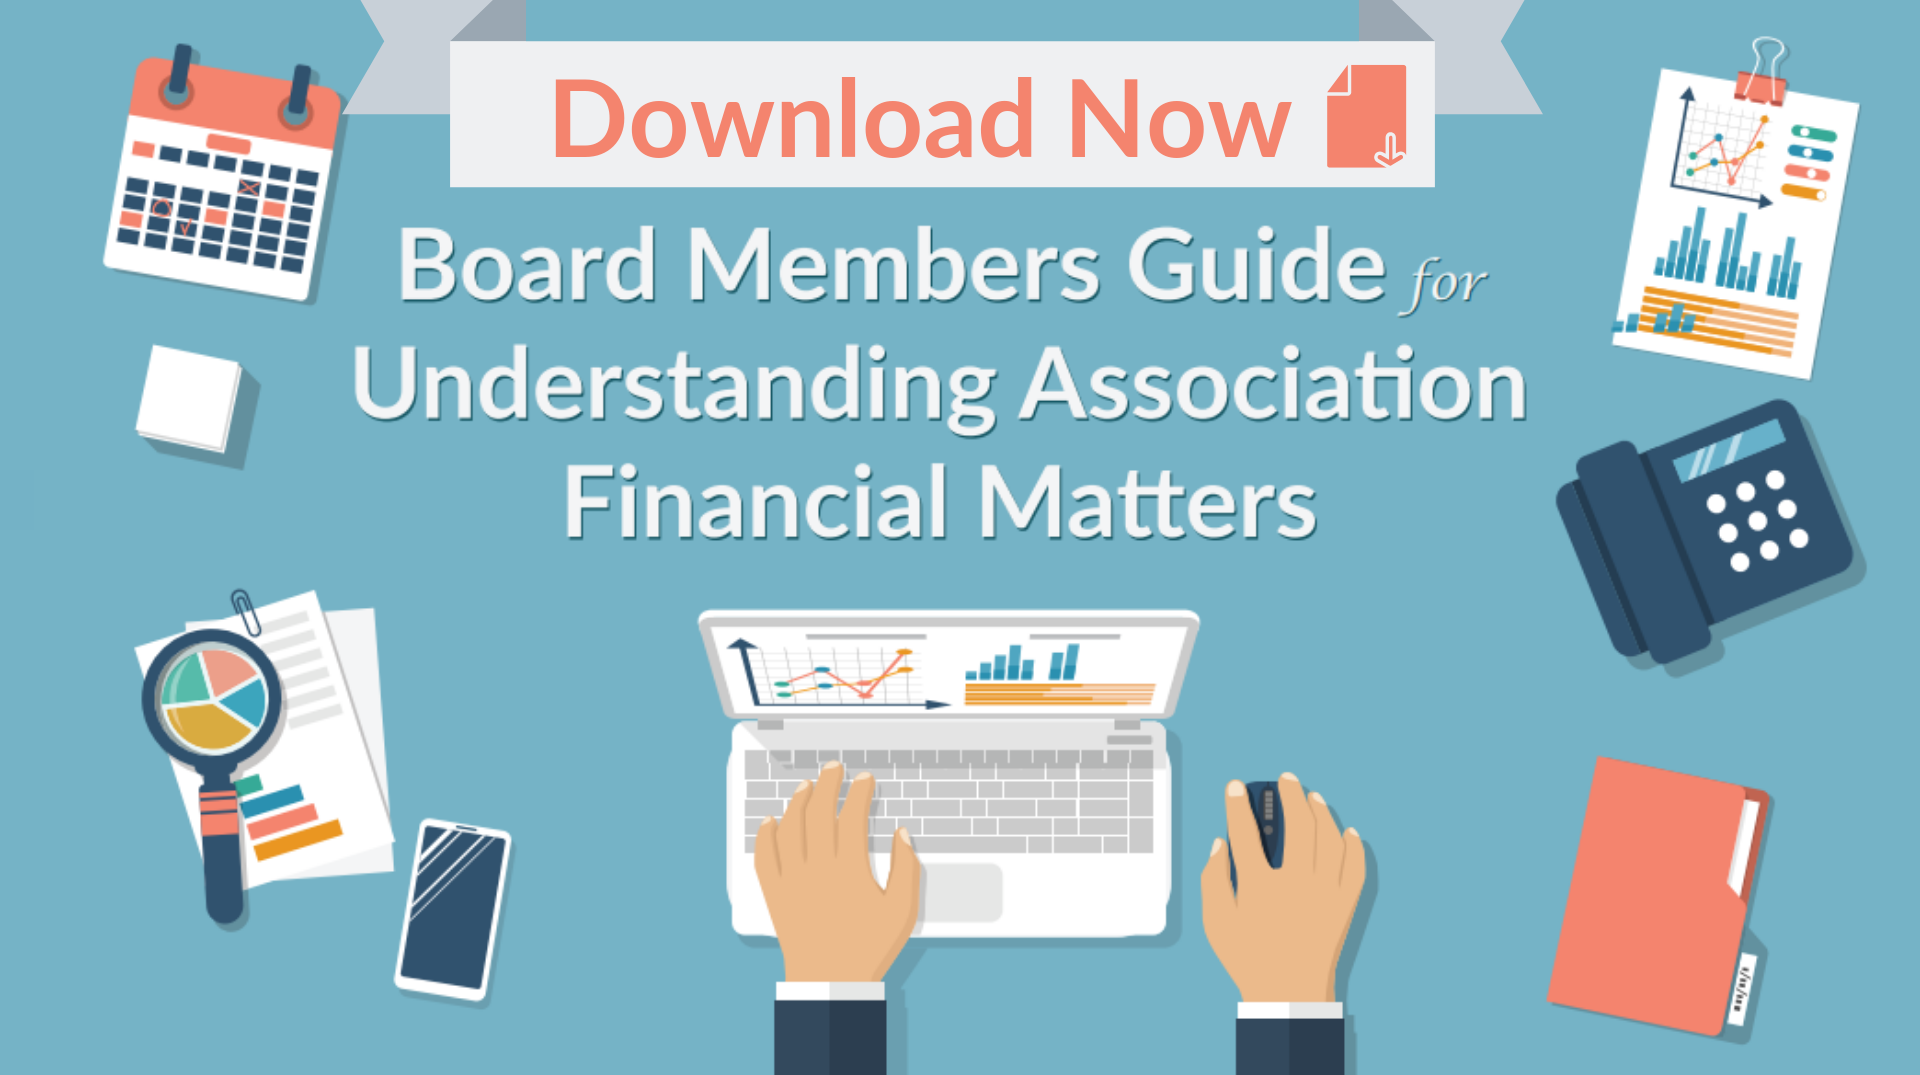 Board Members Financial Guide EBook - Download